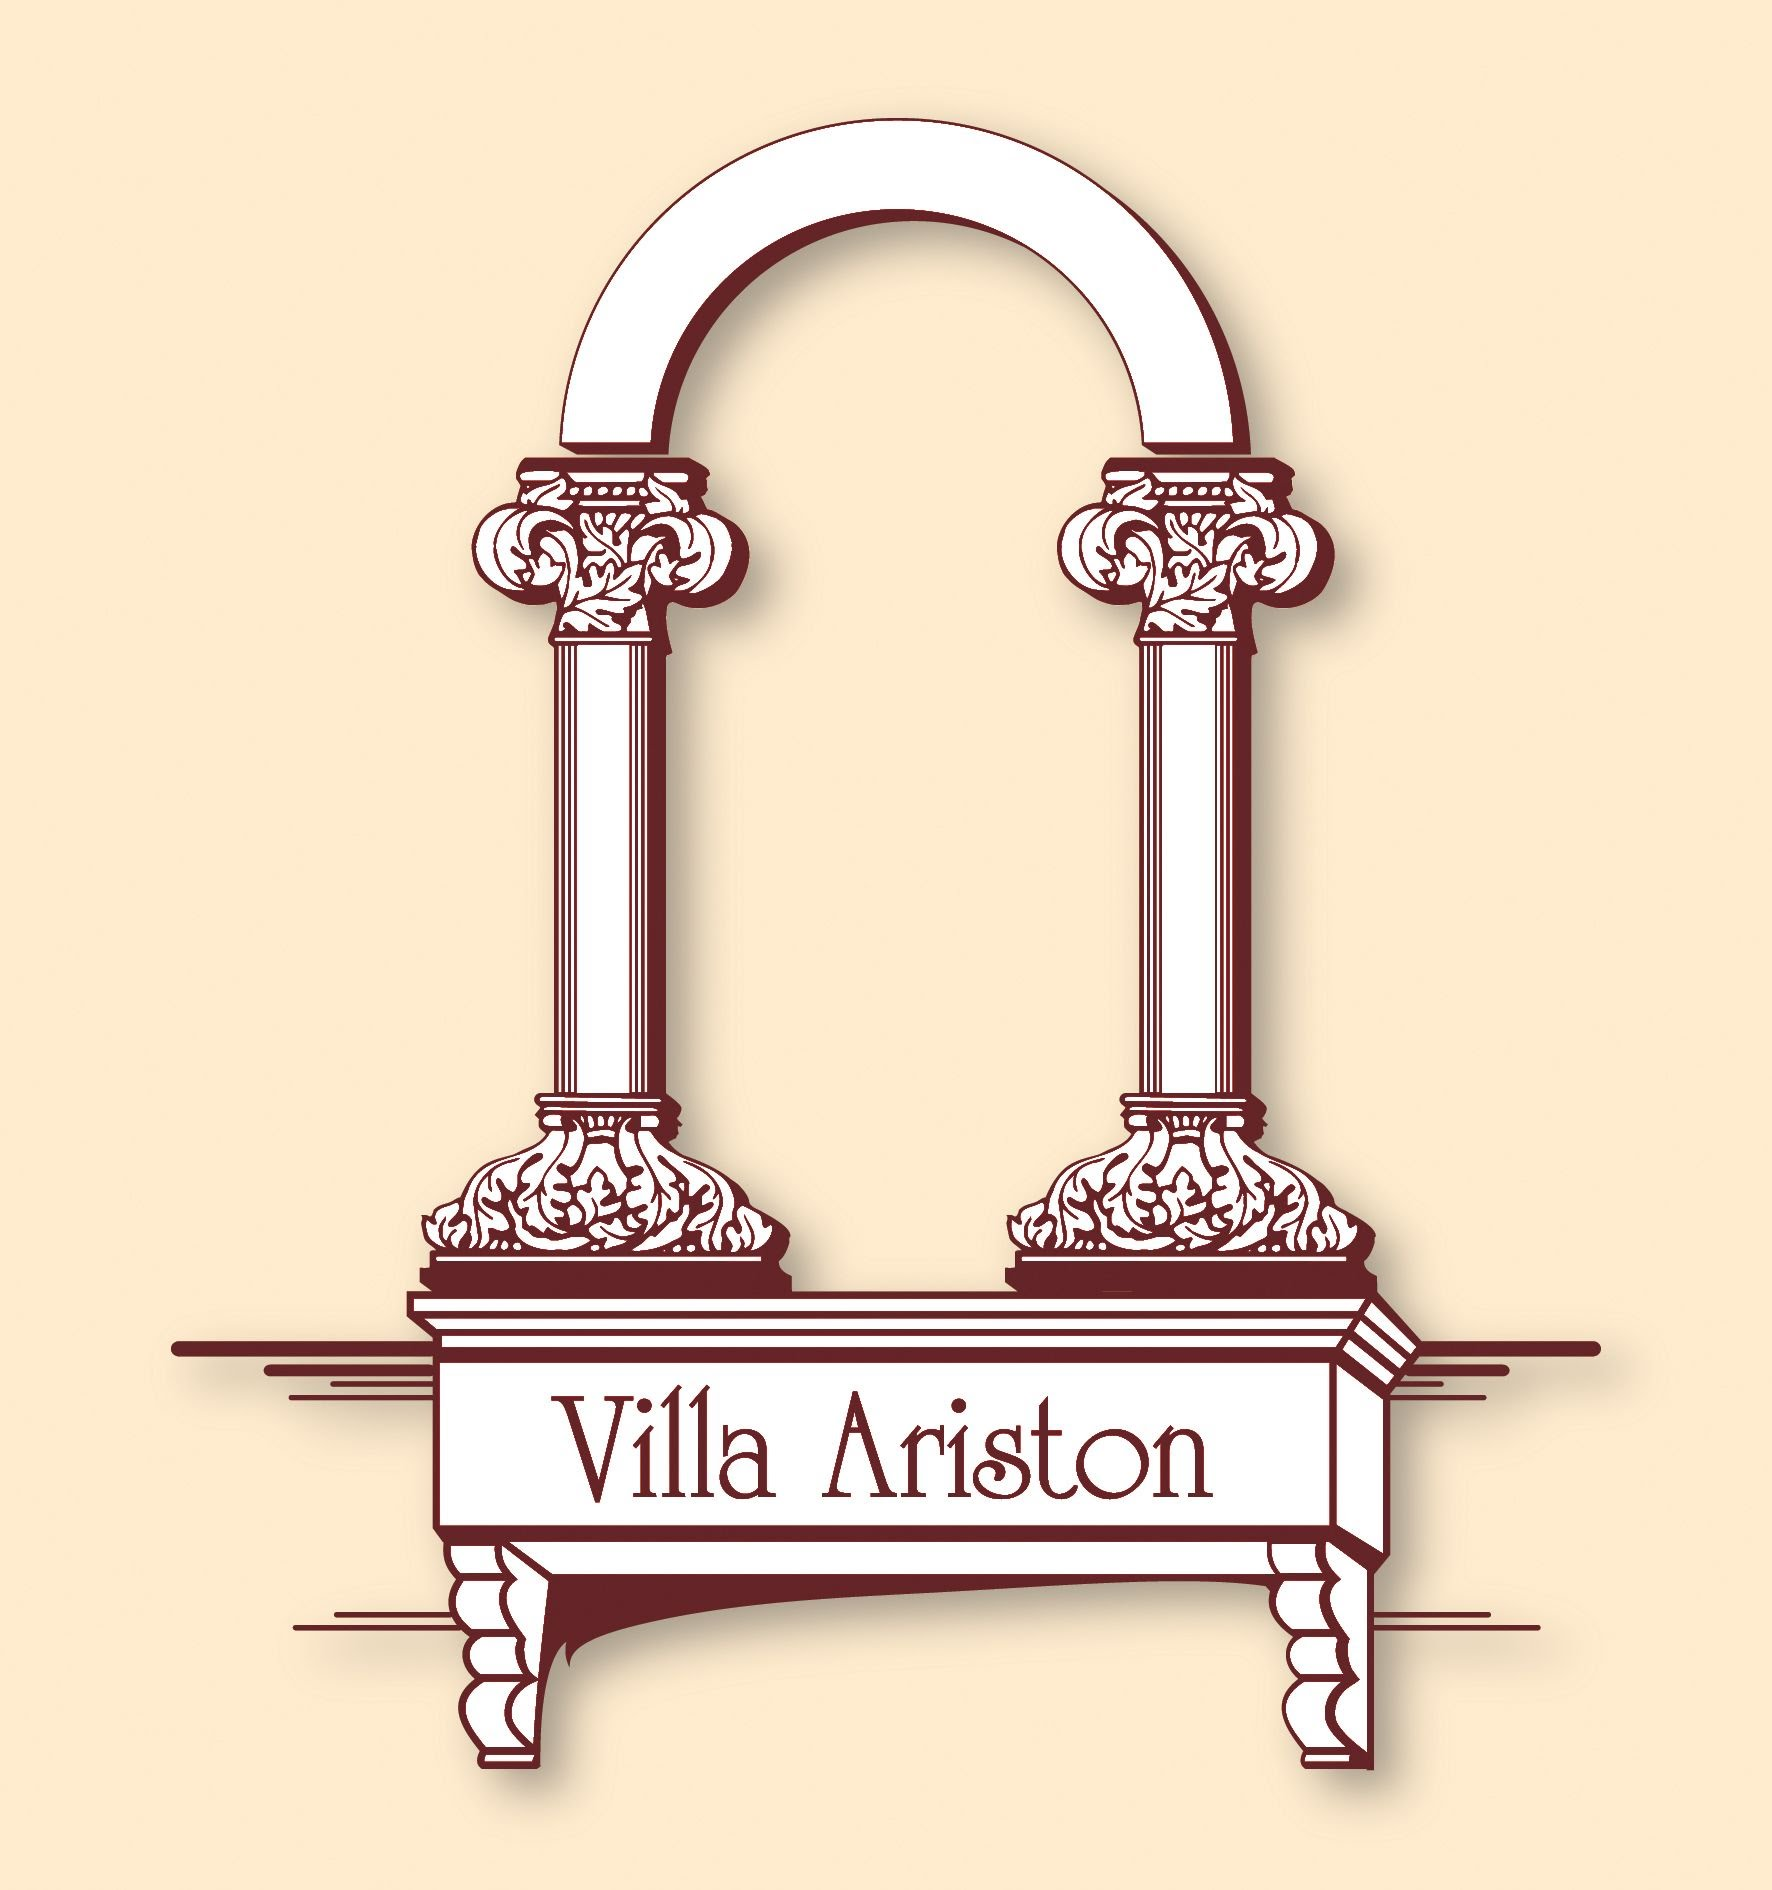 http://villa-ariston.hr/